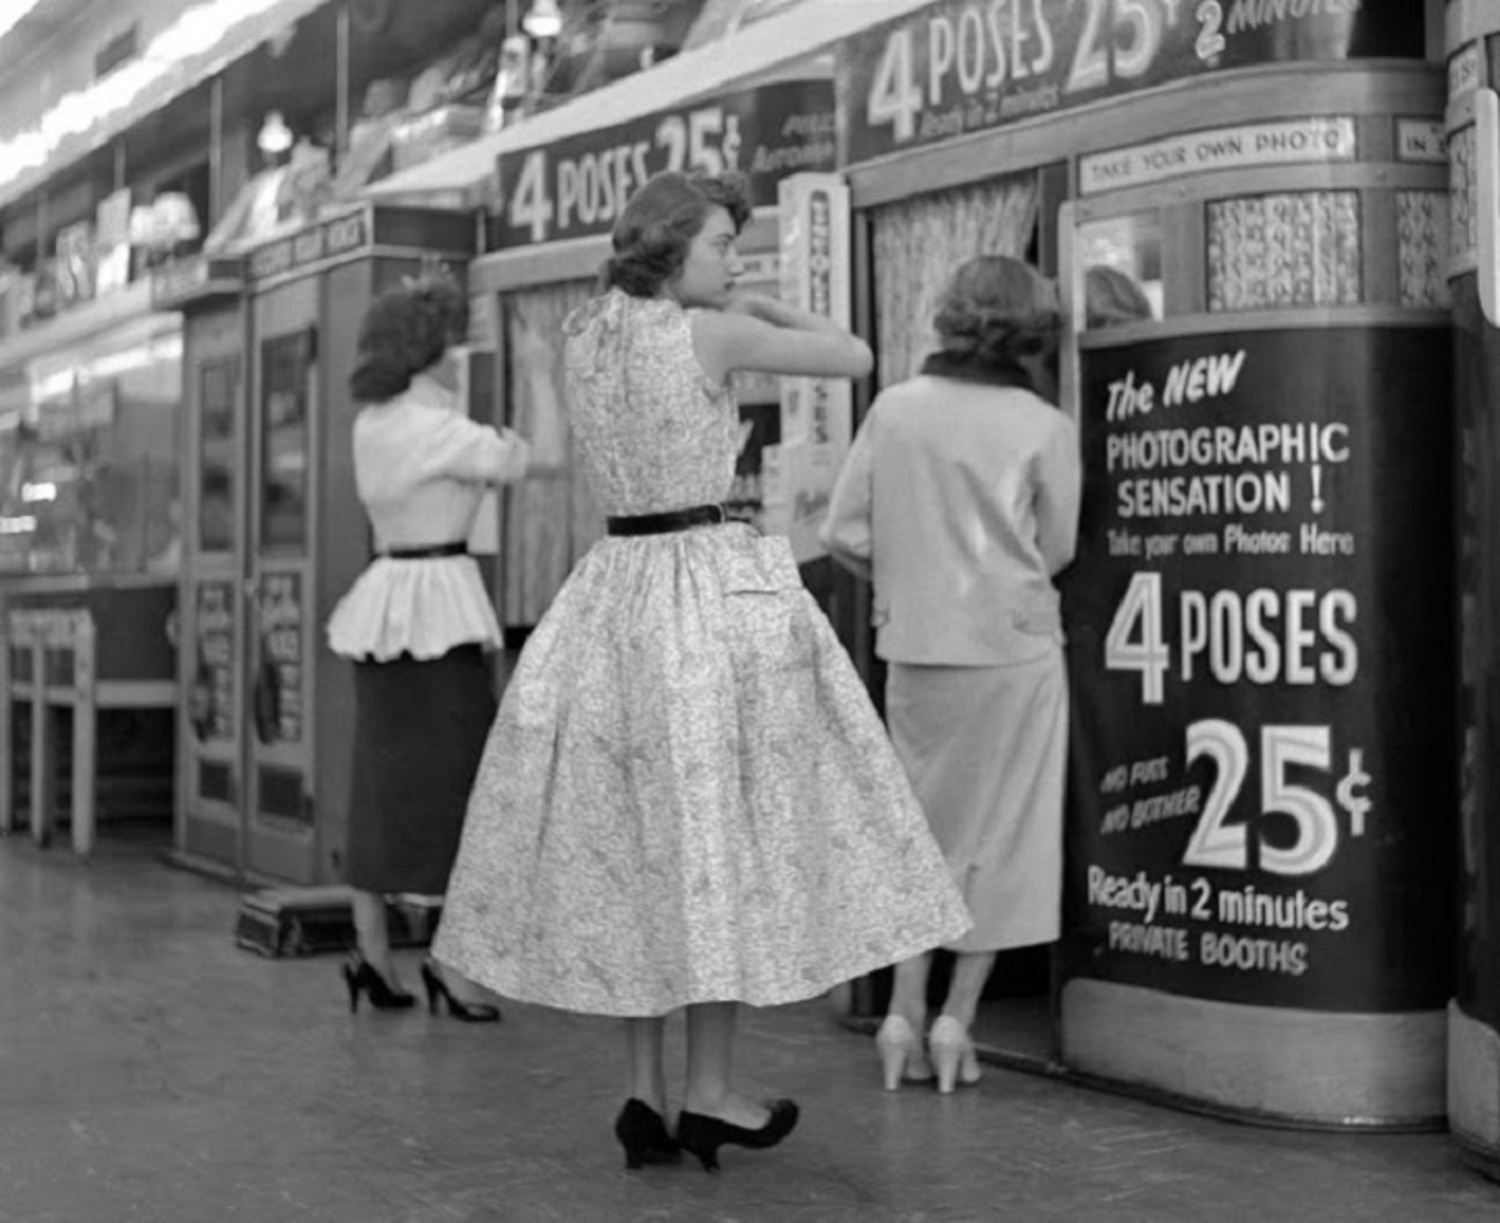 Vintage Photos of Everyday Life in 1950s New York Discovered in Attic 50 Years Later